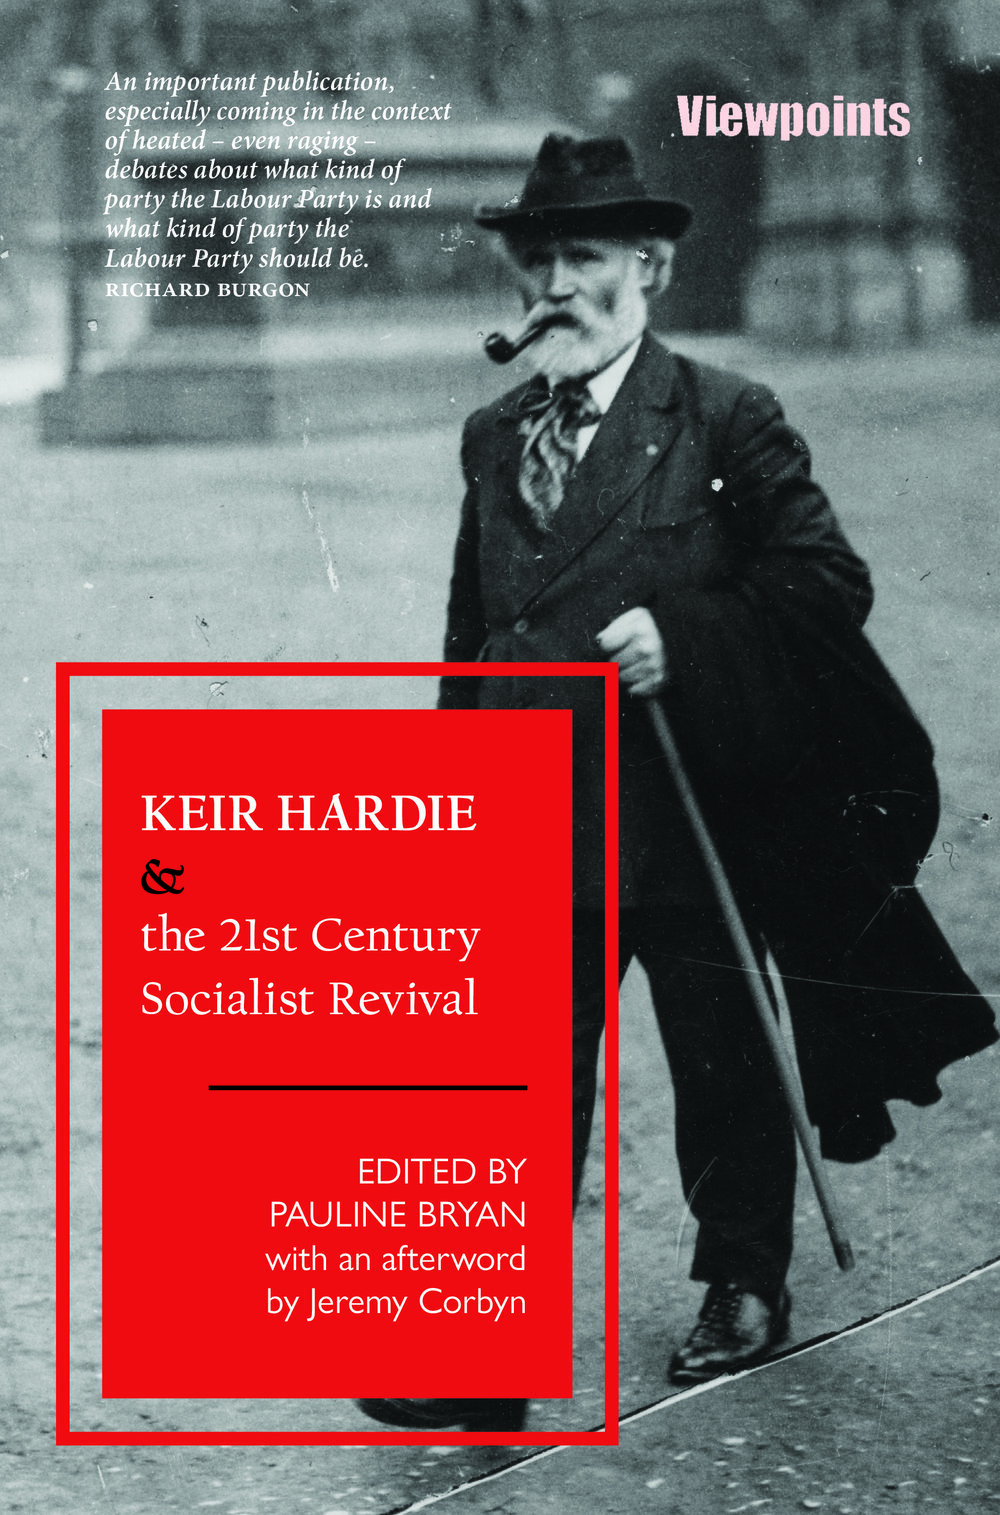 Keir Hardie and the 21st Century Socialist Revivial Pauline Bryan 9781913025038 Luath Press.jpg